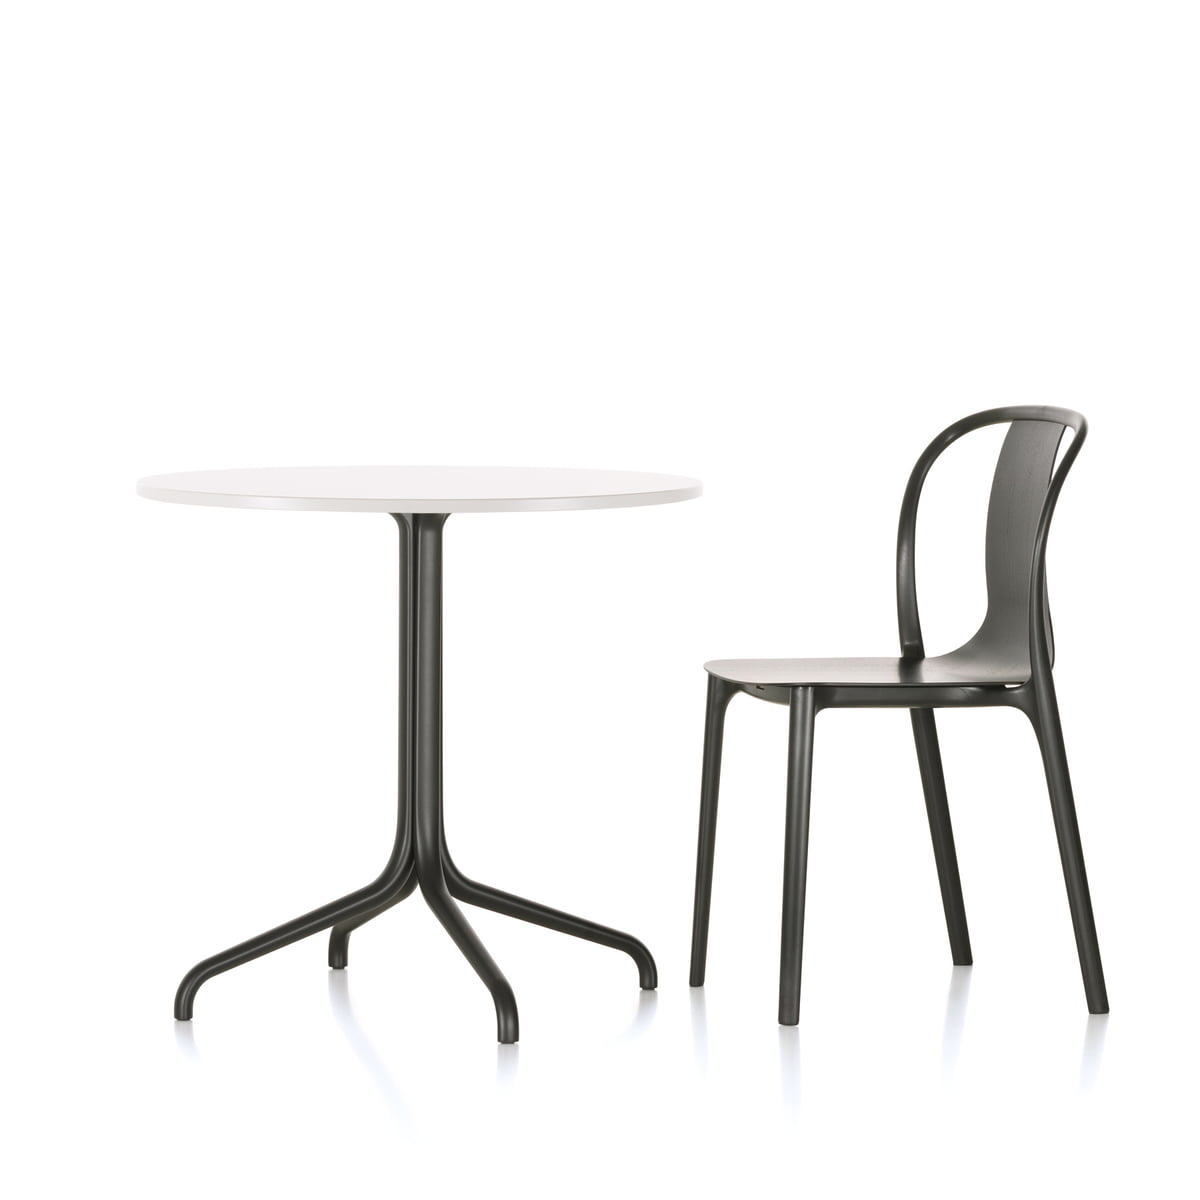 Indoor bistro table and chairs - Belleville Bistro Table And Belleville Chair Wood By Vitra